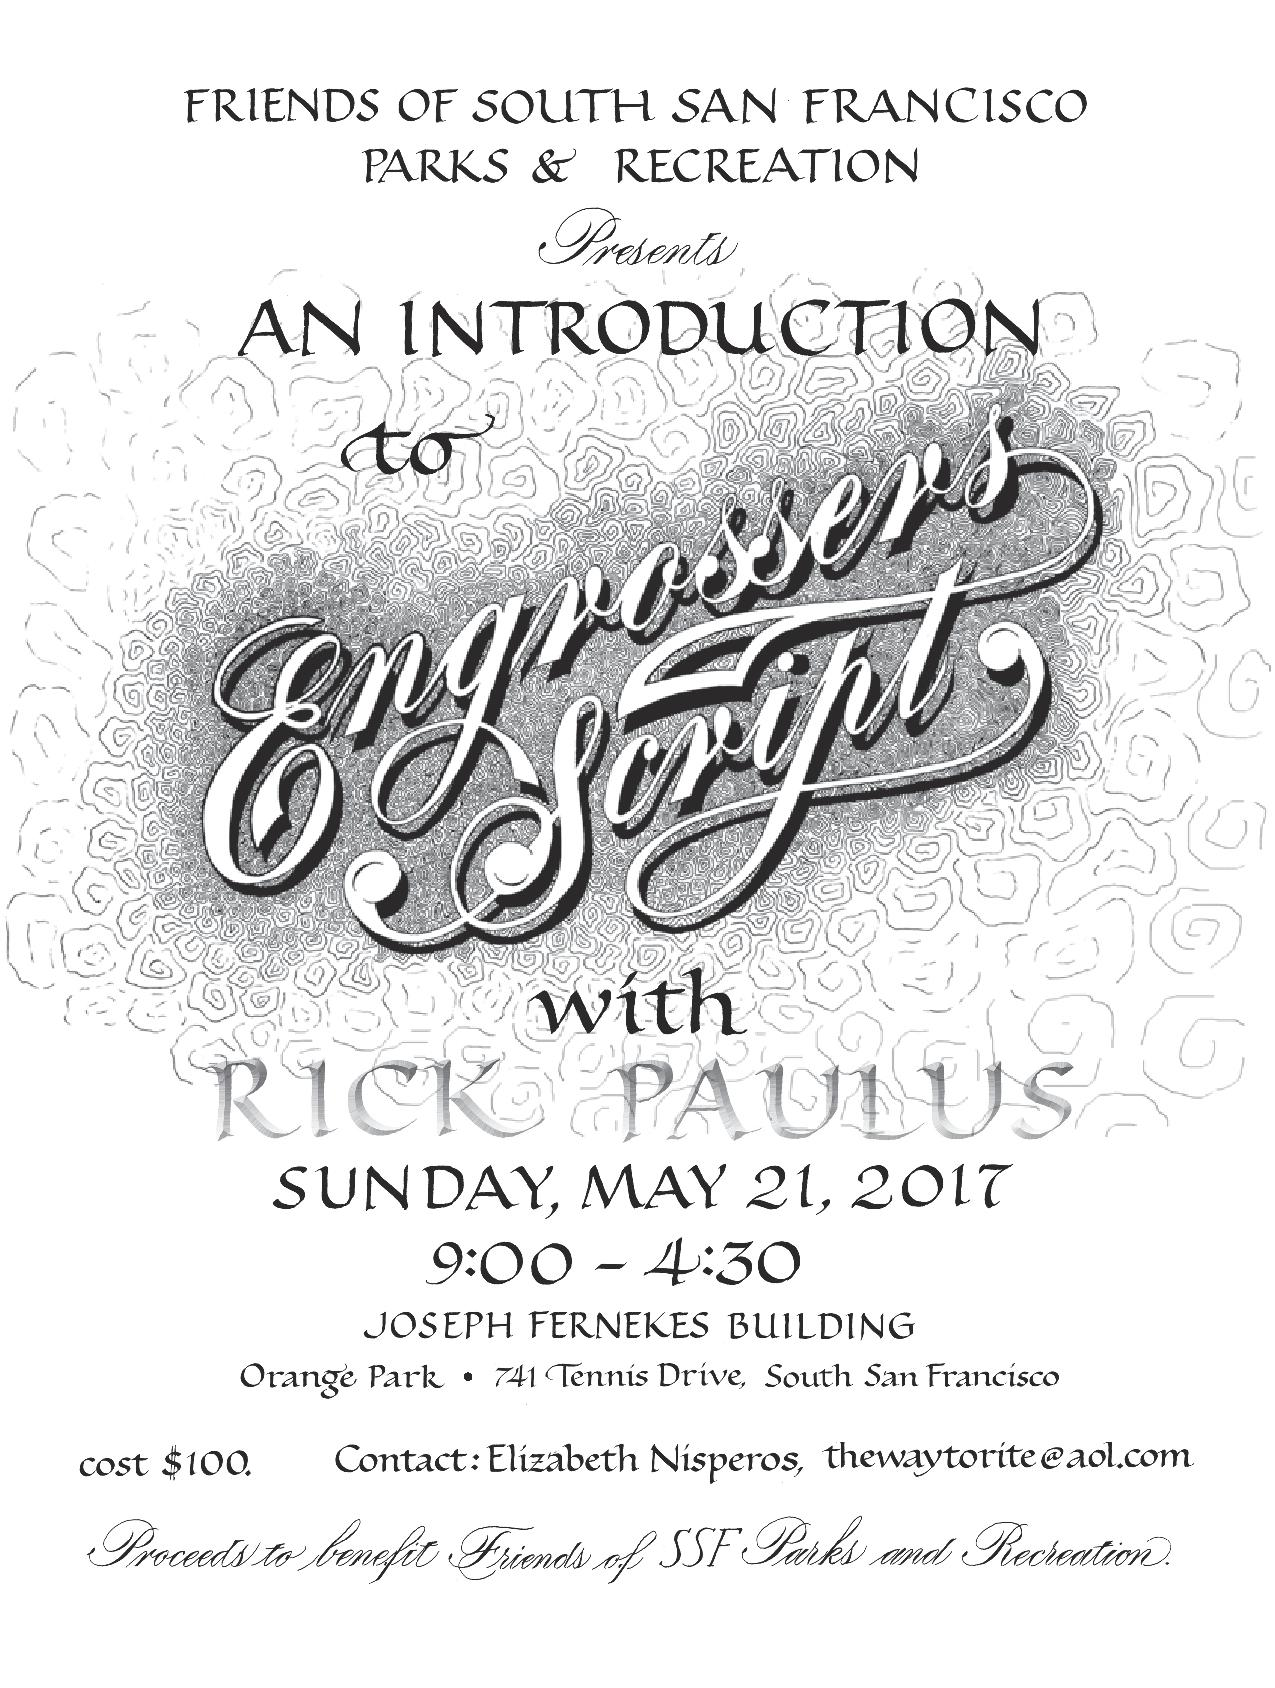 Friends of Park and Rec Hosting Introduction To Engrosser's Script With Rick Paulus May 21st